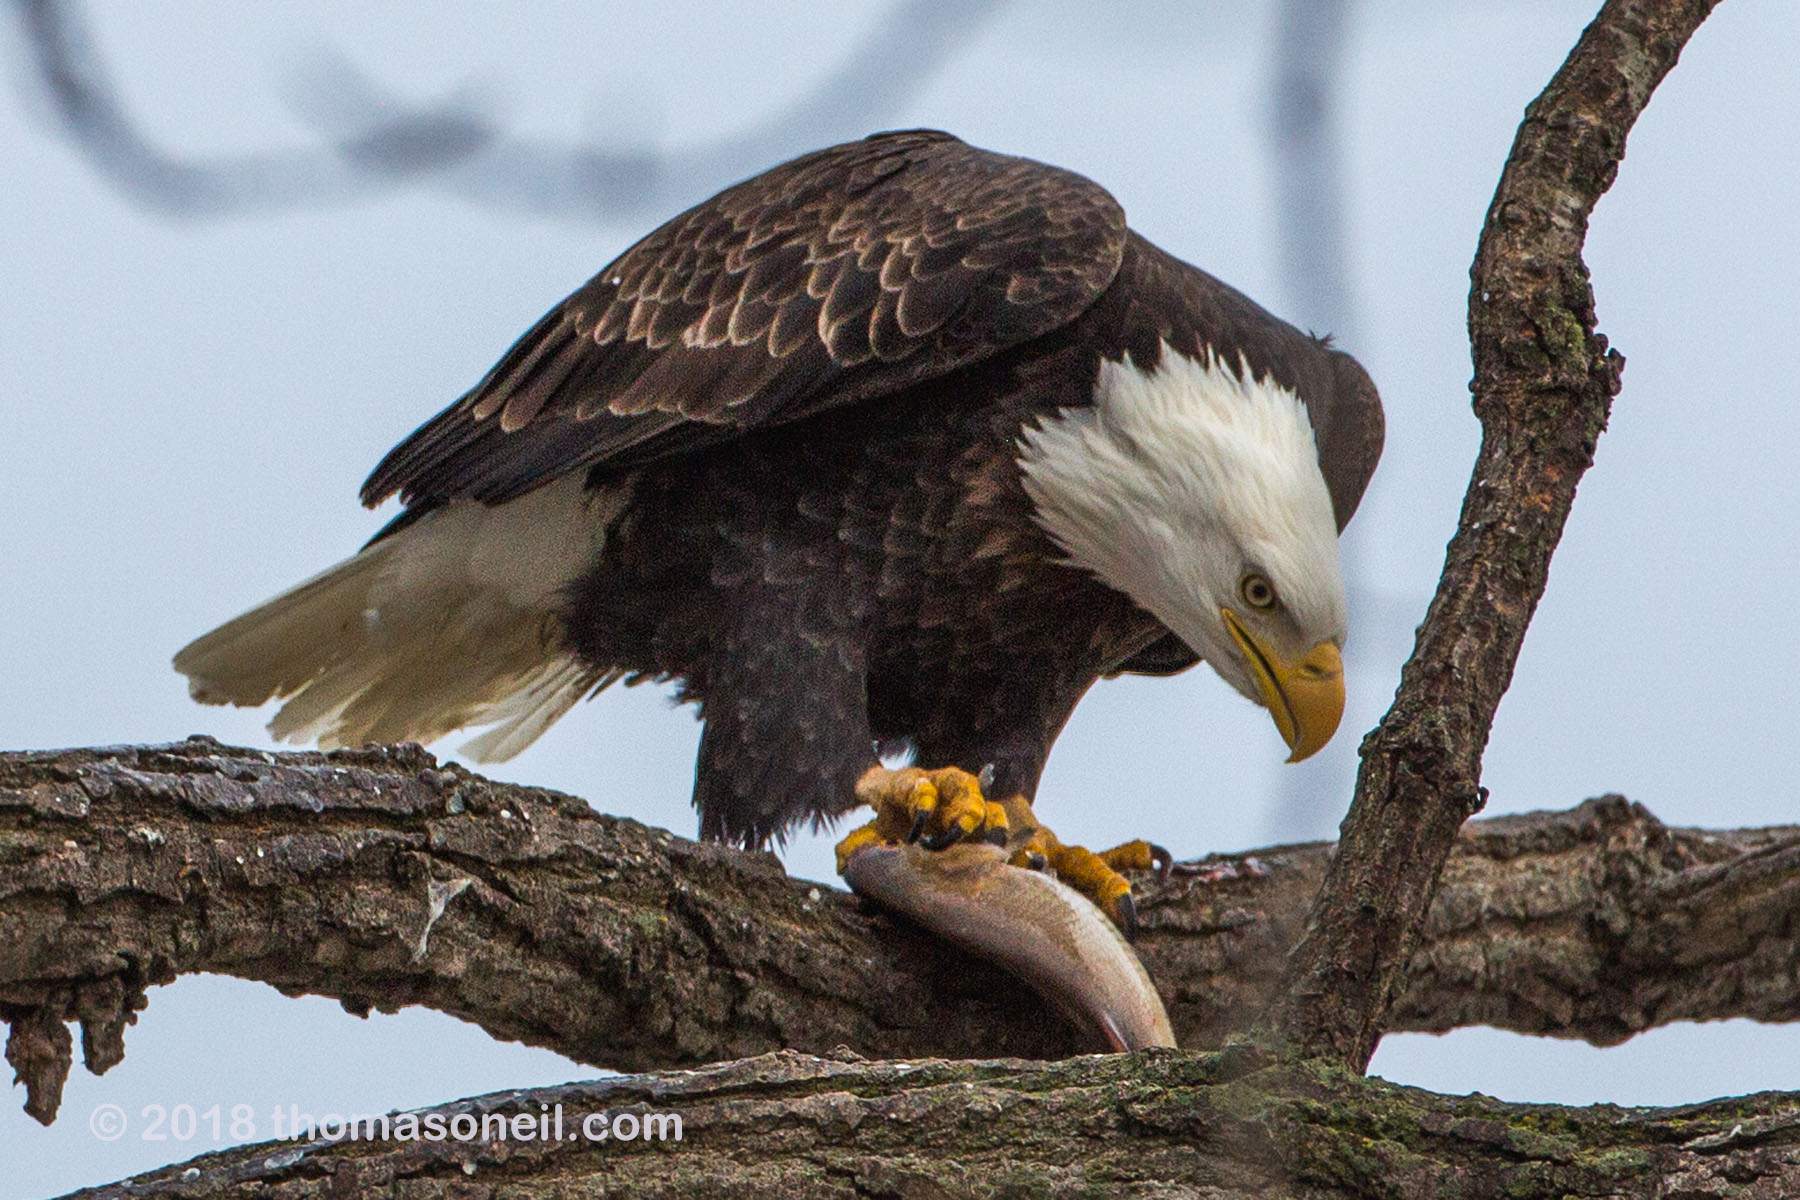 Bald eagle eating fish, 3 of 7 in sequence Keokuk, Iowa, January 2018.  Click for next photo.